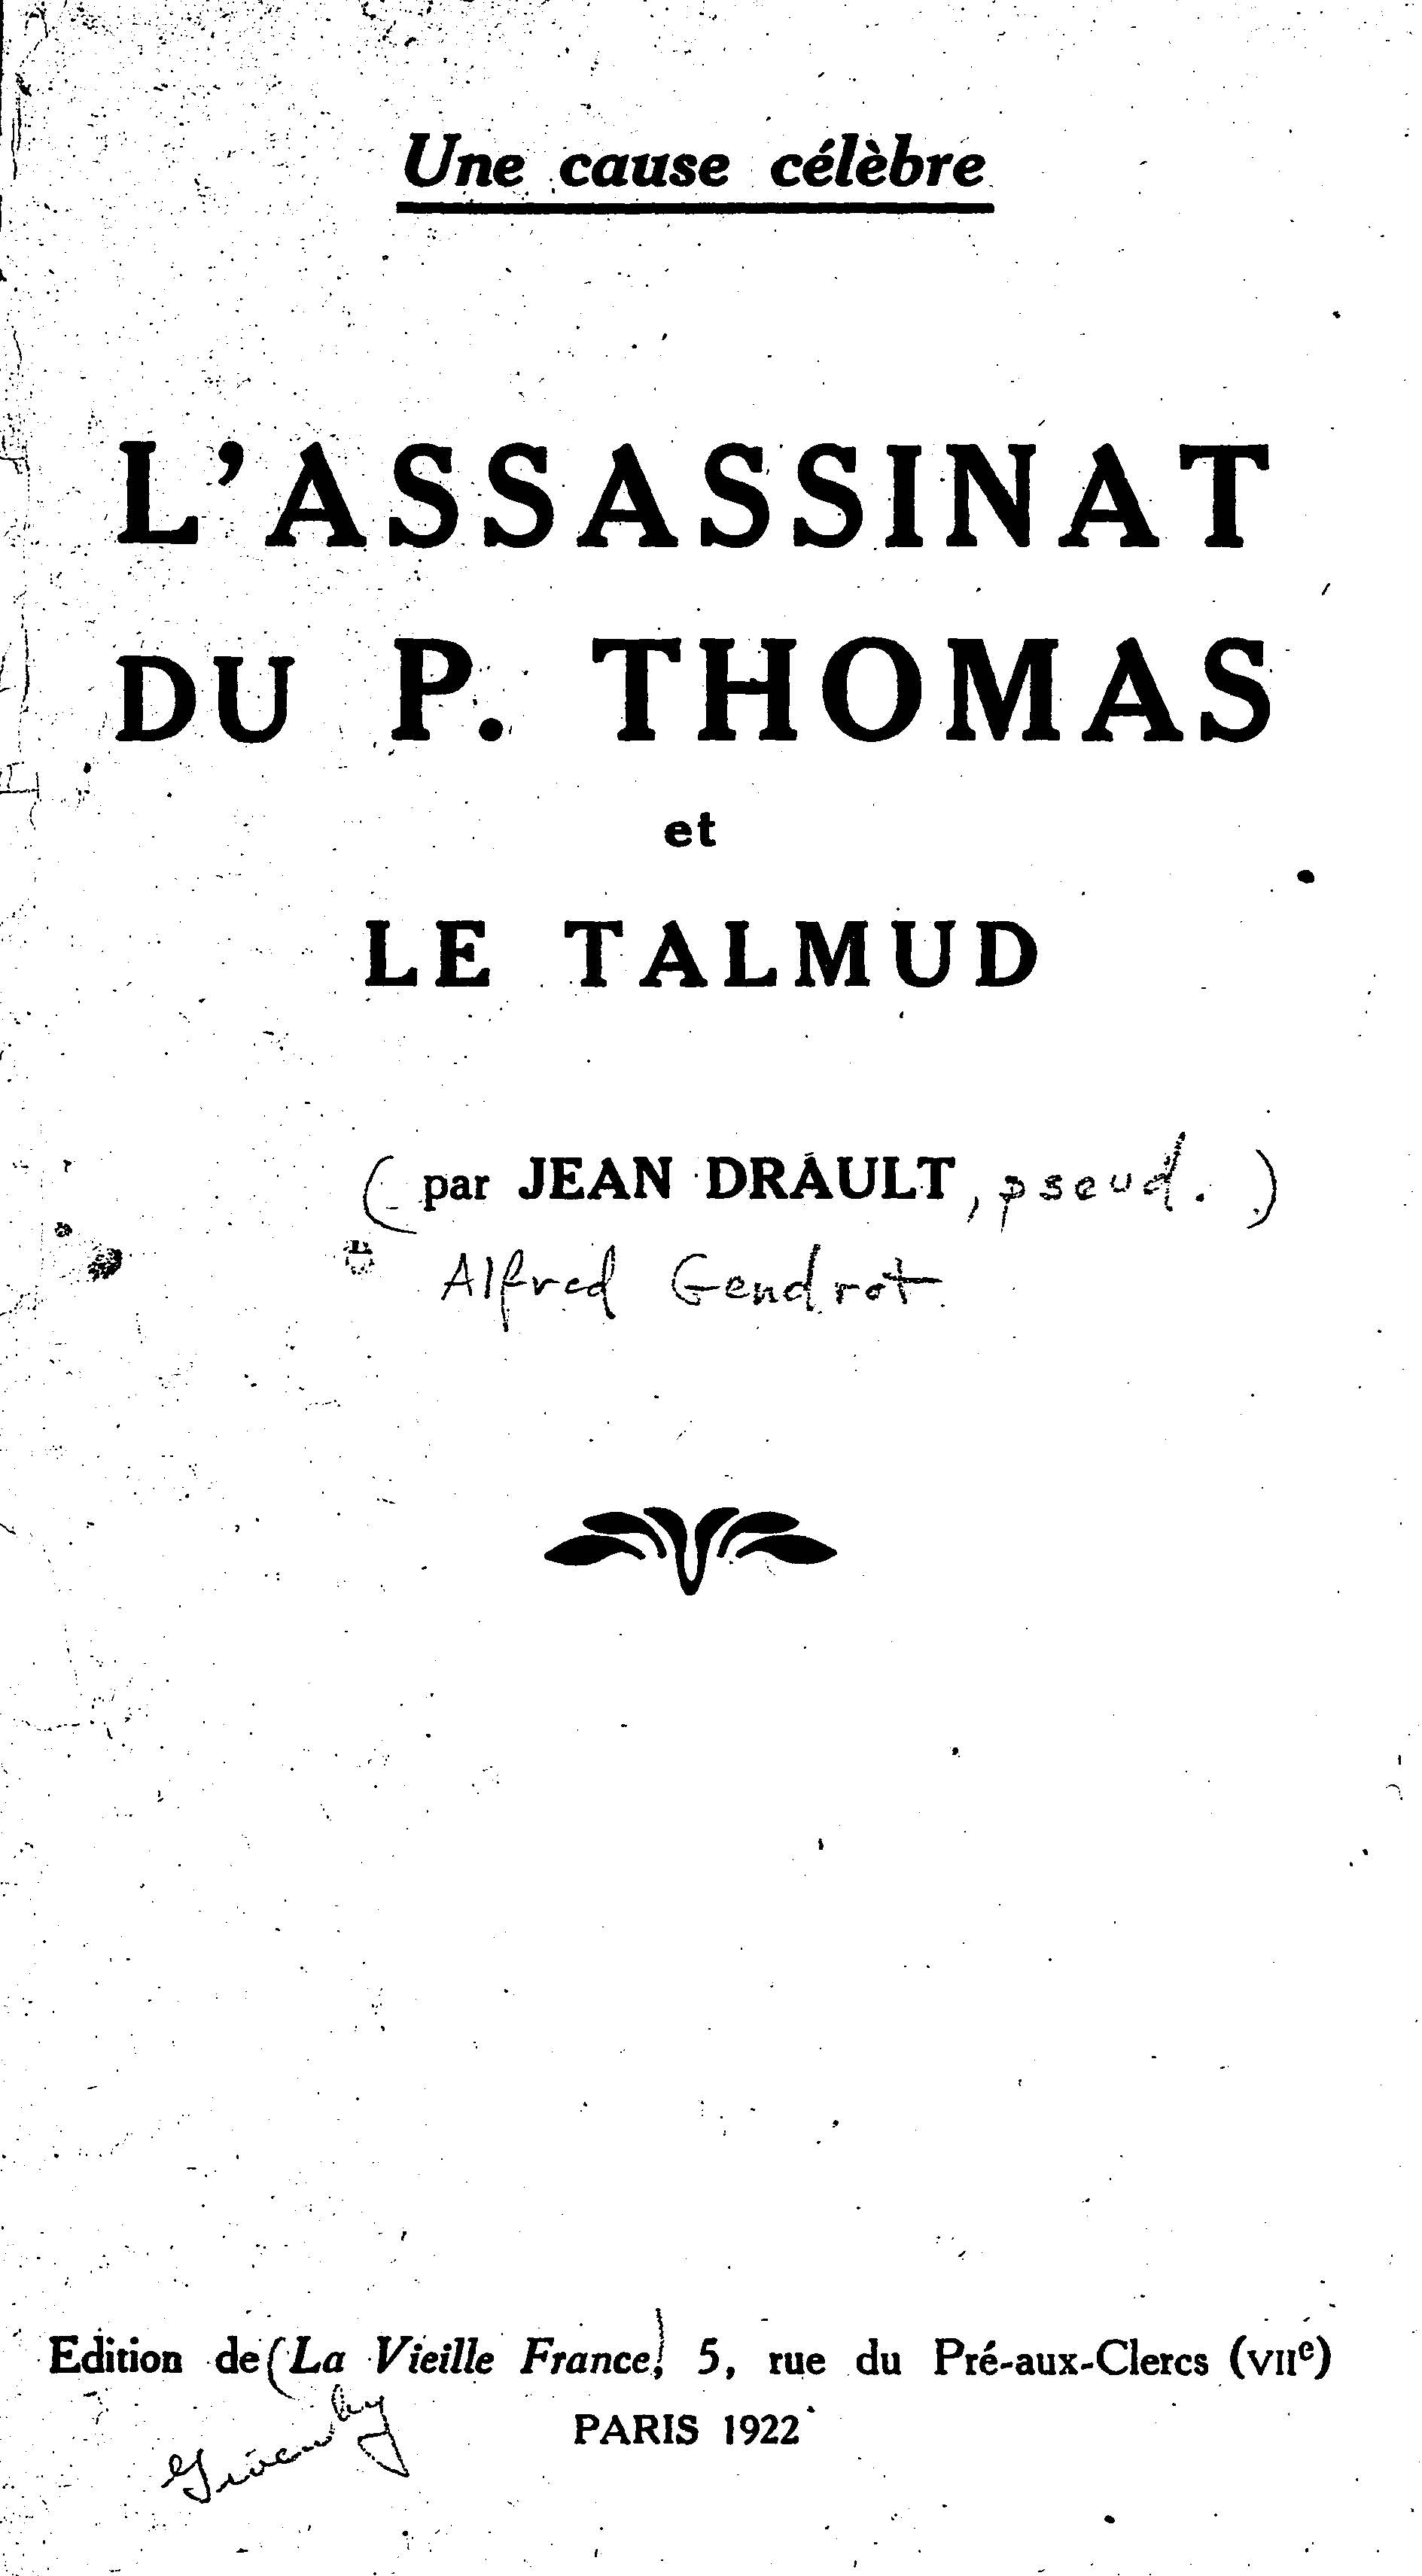 L_assassinat_du_Pr._Thomas_et_le_Talmud.jpg